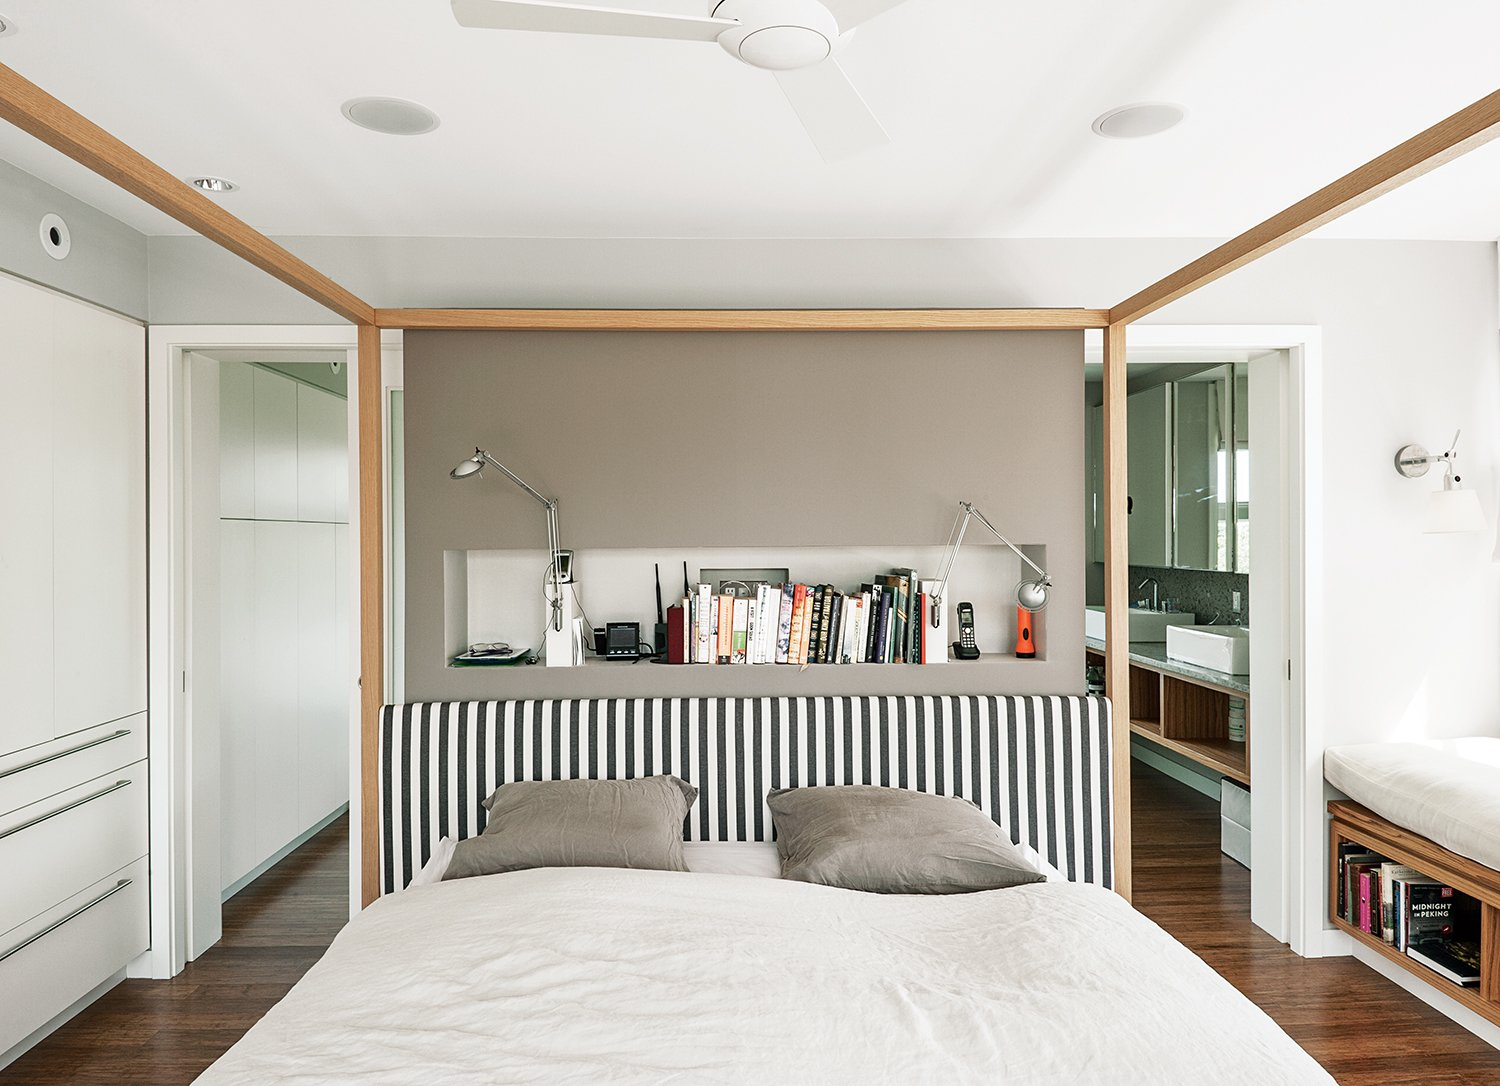 An Alcova bed from B&B Italia dominates the master bedroom. A niche behind the bed holds Berenice wall lamps by Luceplan, and the walls are painted in Cornforth White and Charleston Gray from Farrow & Ball. Tagged: Bedroom, Bed, and Medium Hardwood Floor.  Photo 8 of 11 in An Unconventional Prefab on Fishers Island